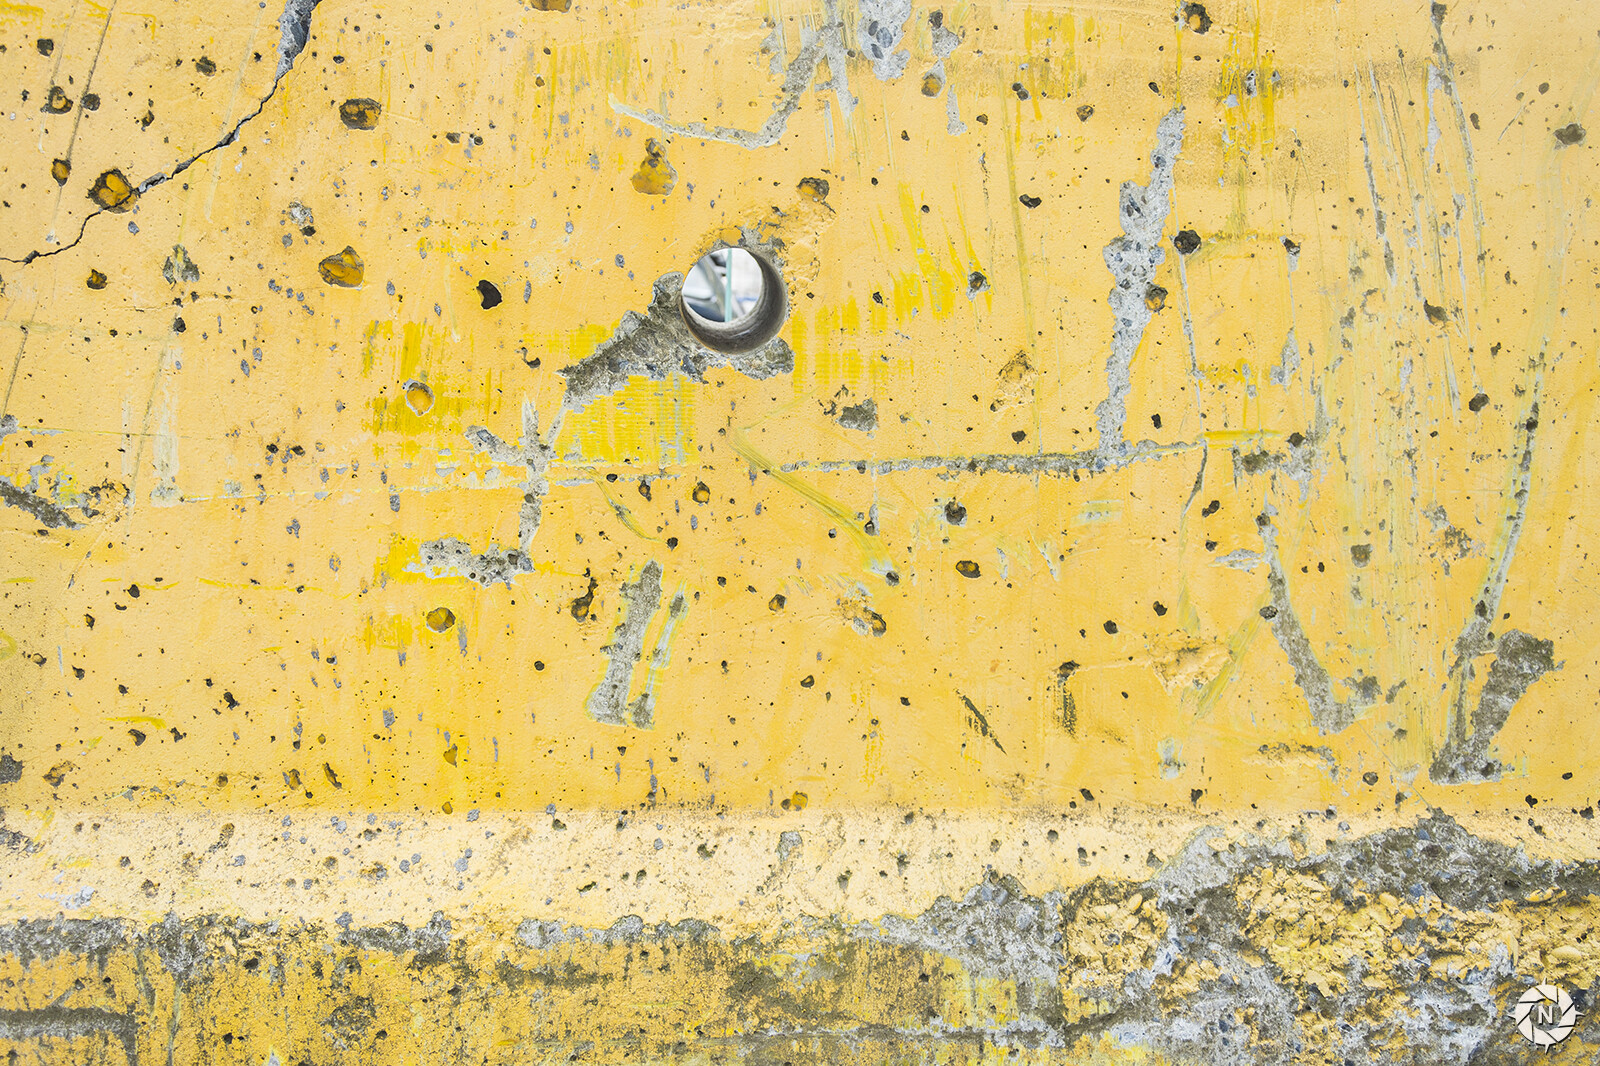 From the Texture Photo Pack: Walls  https://www.artstation.com/a/165851